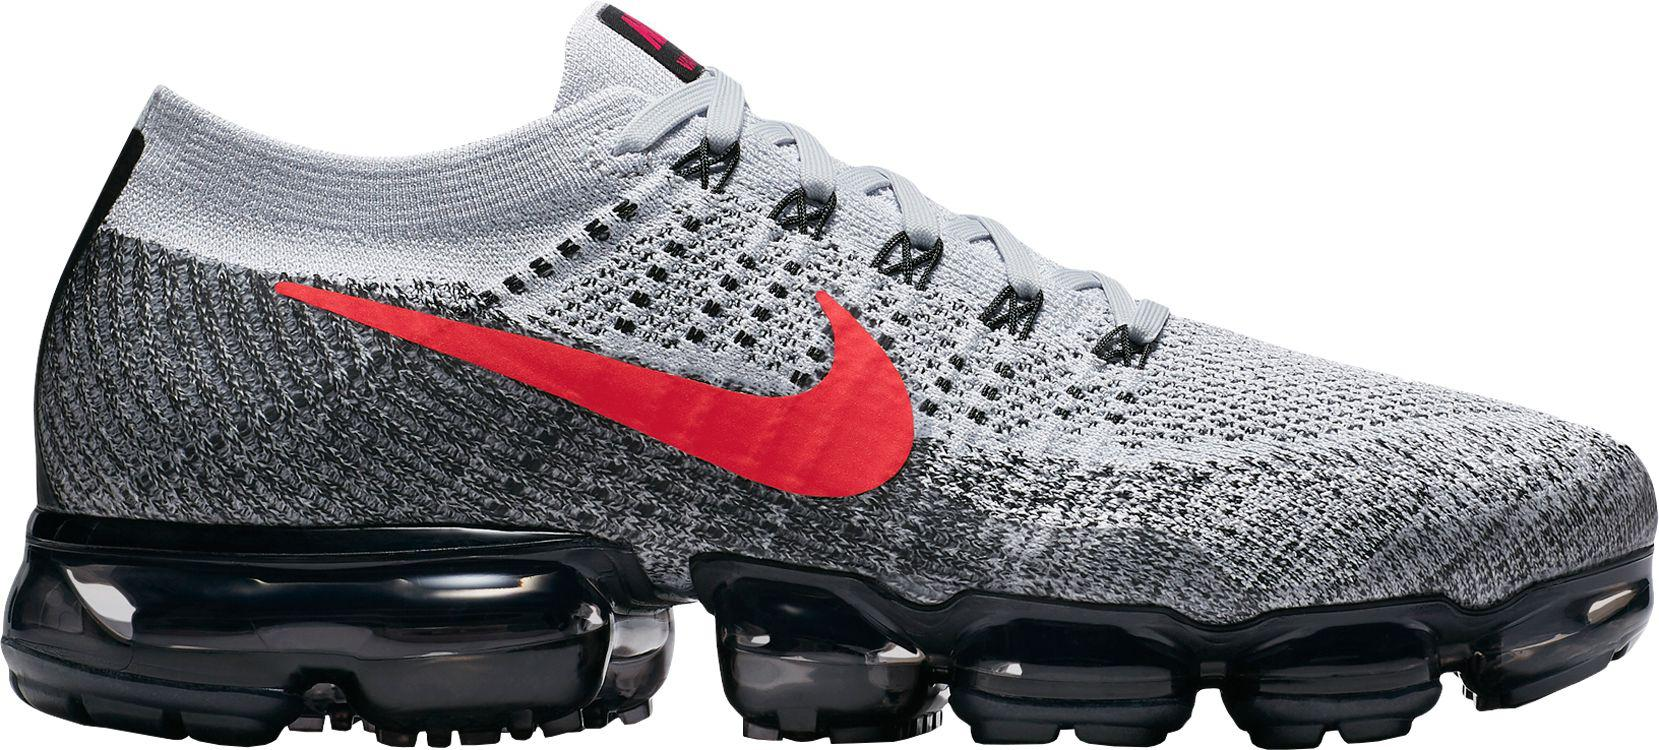 Lyst Nike Air Vapormax Flyknit Running Shoes in Gray for Men